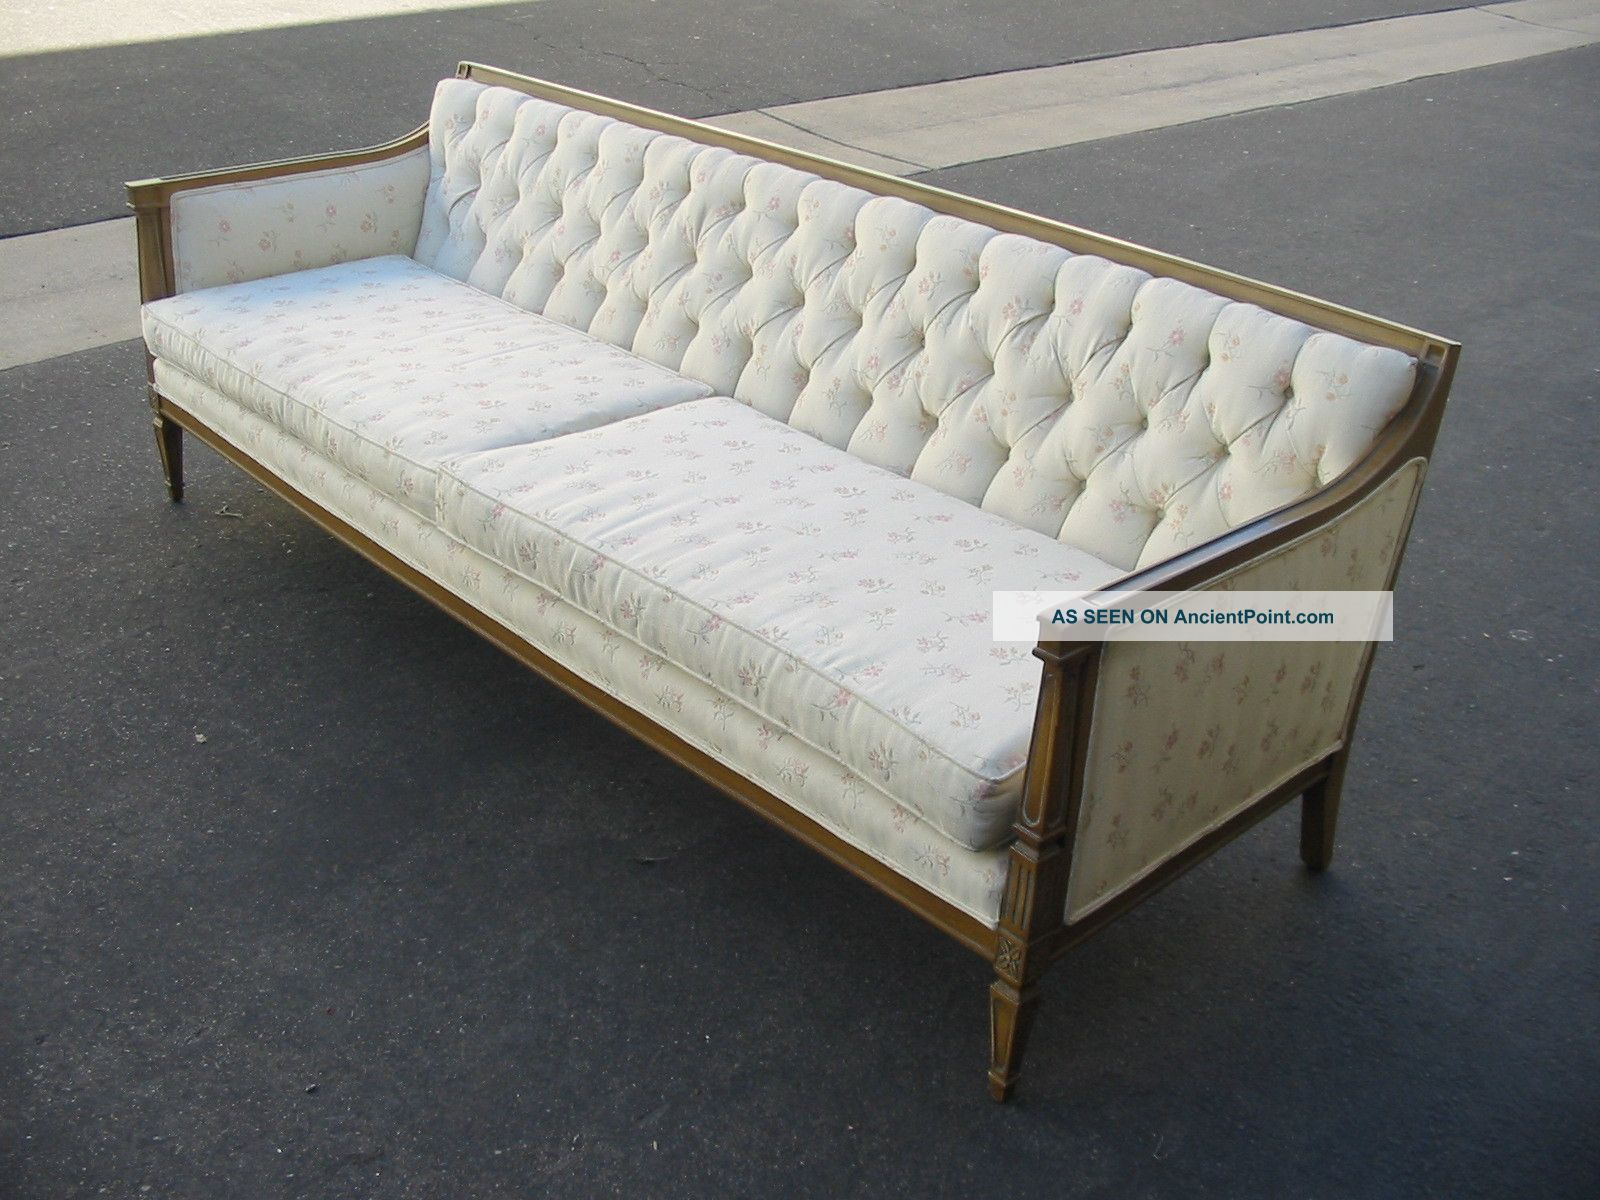 shabby chic sofa bed uk how to wash my cushion covers vintage couch tisch raum und möbeldesign inspiration